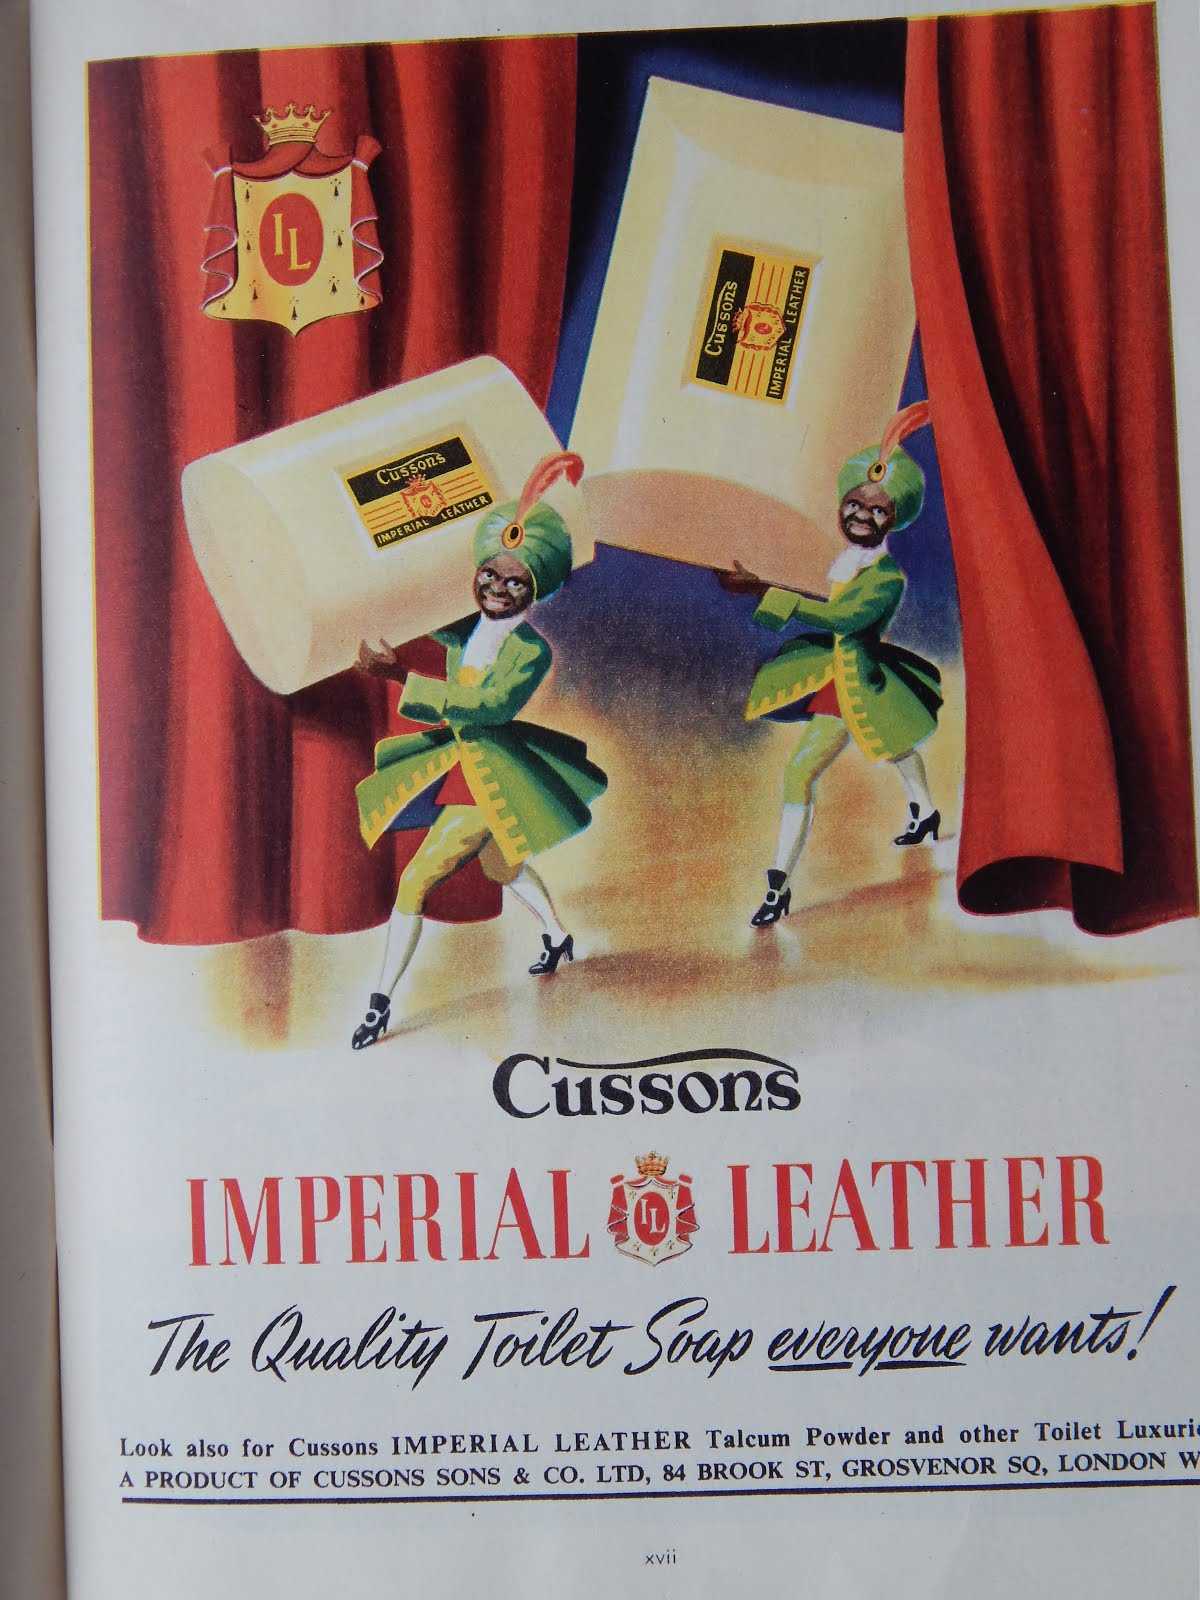 Every household had Imperial Leather